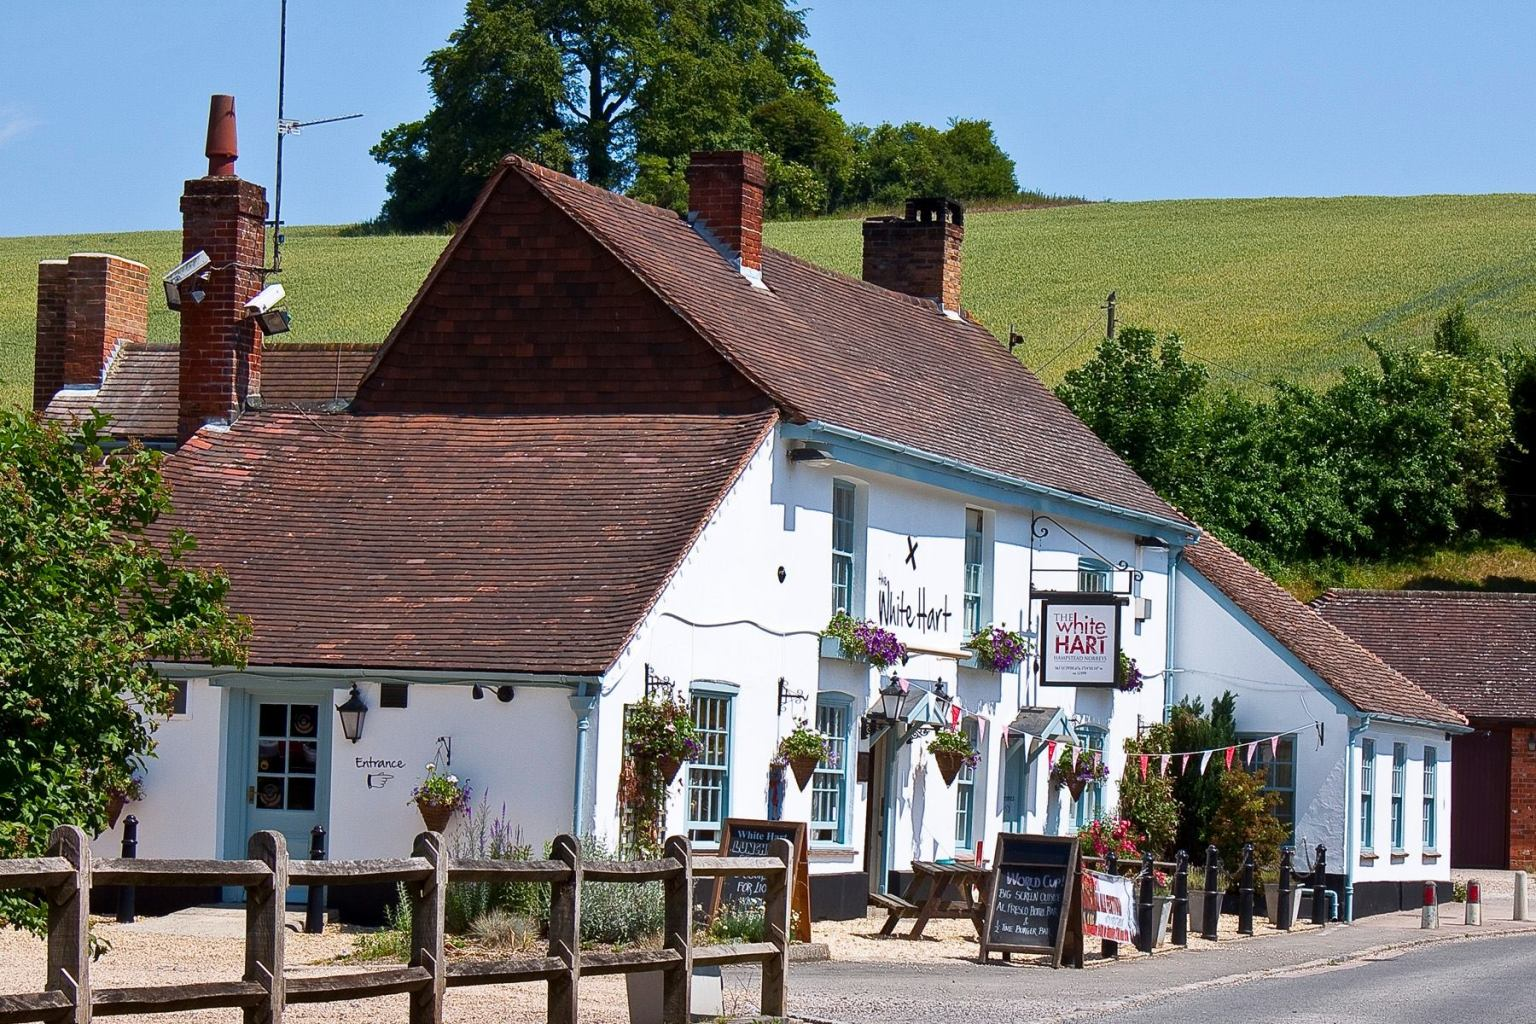 The White Hart Inn, Hampstead Norreys